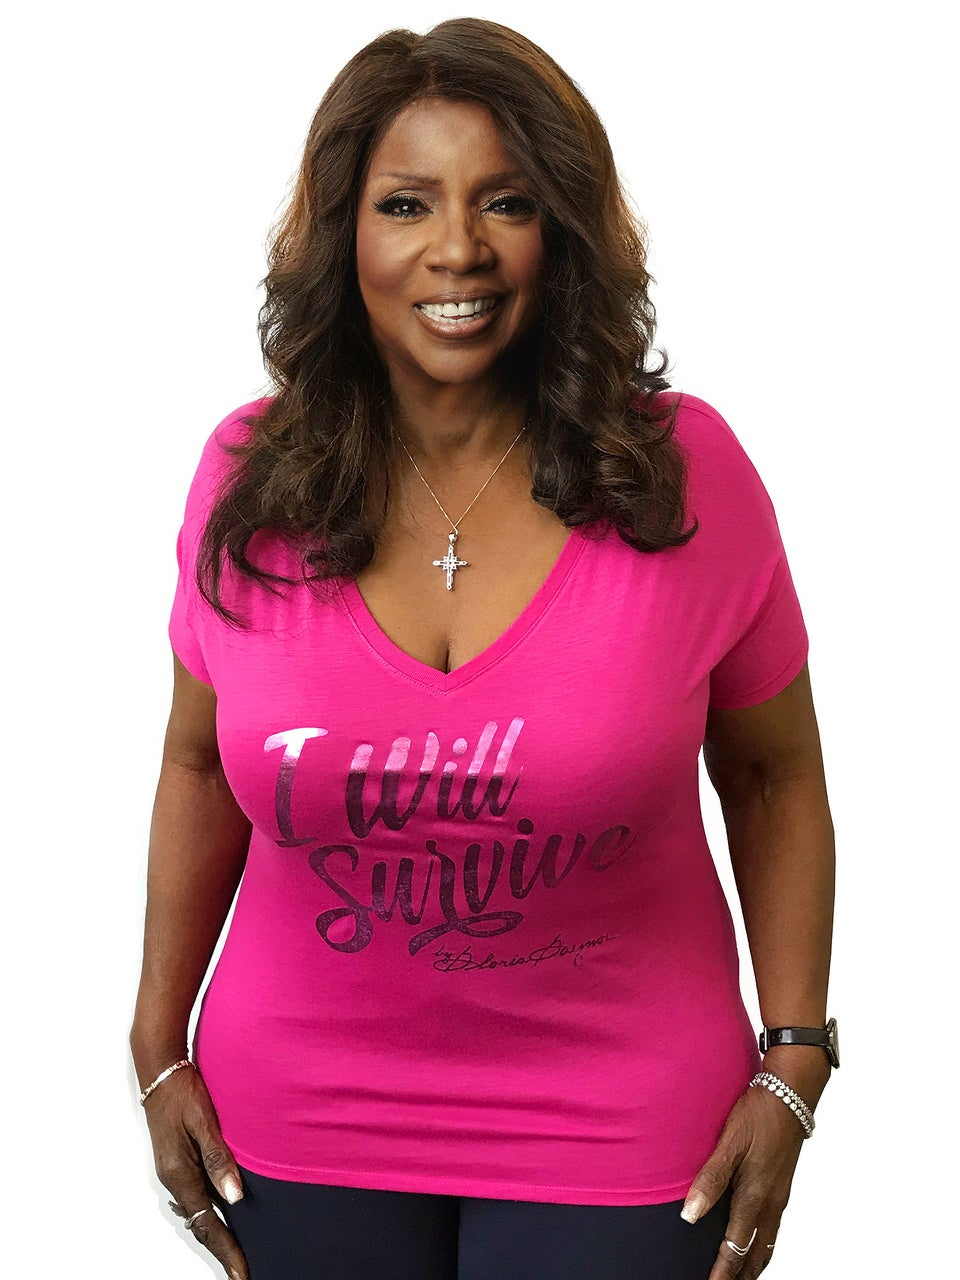 Gloria Gaynor Launches A Charity Site For Survivors 'From Every Walk Of Life'